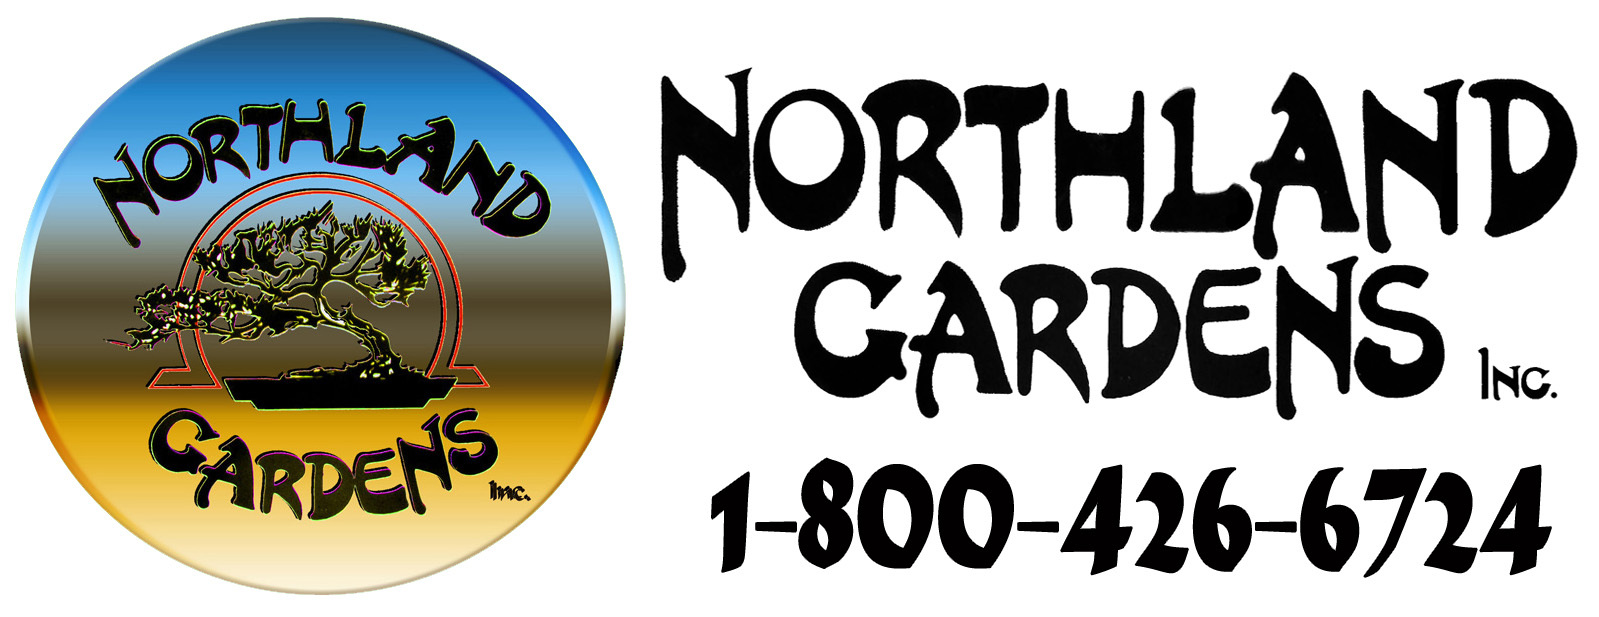 Copyright 2018 Northland Gardens On-Line. Powered by Northland Gardens Inc.